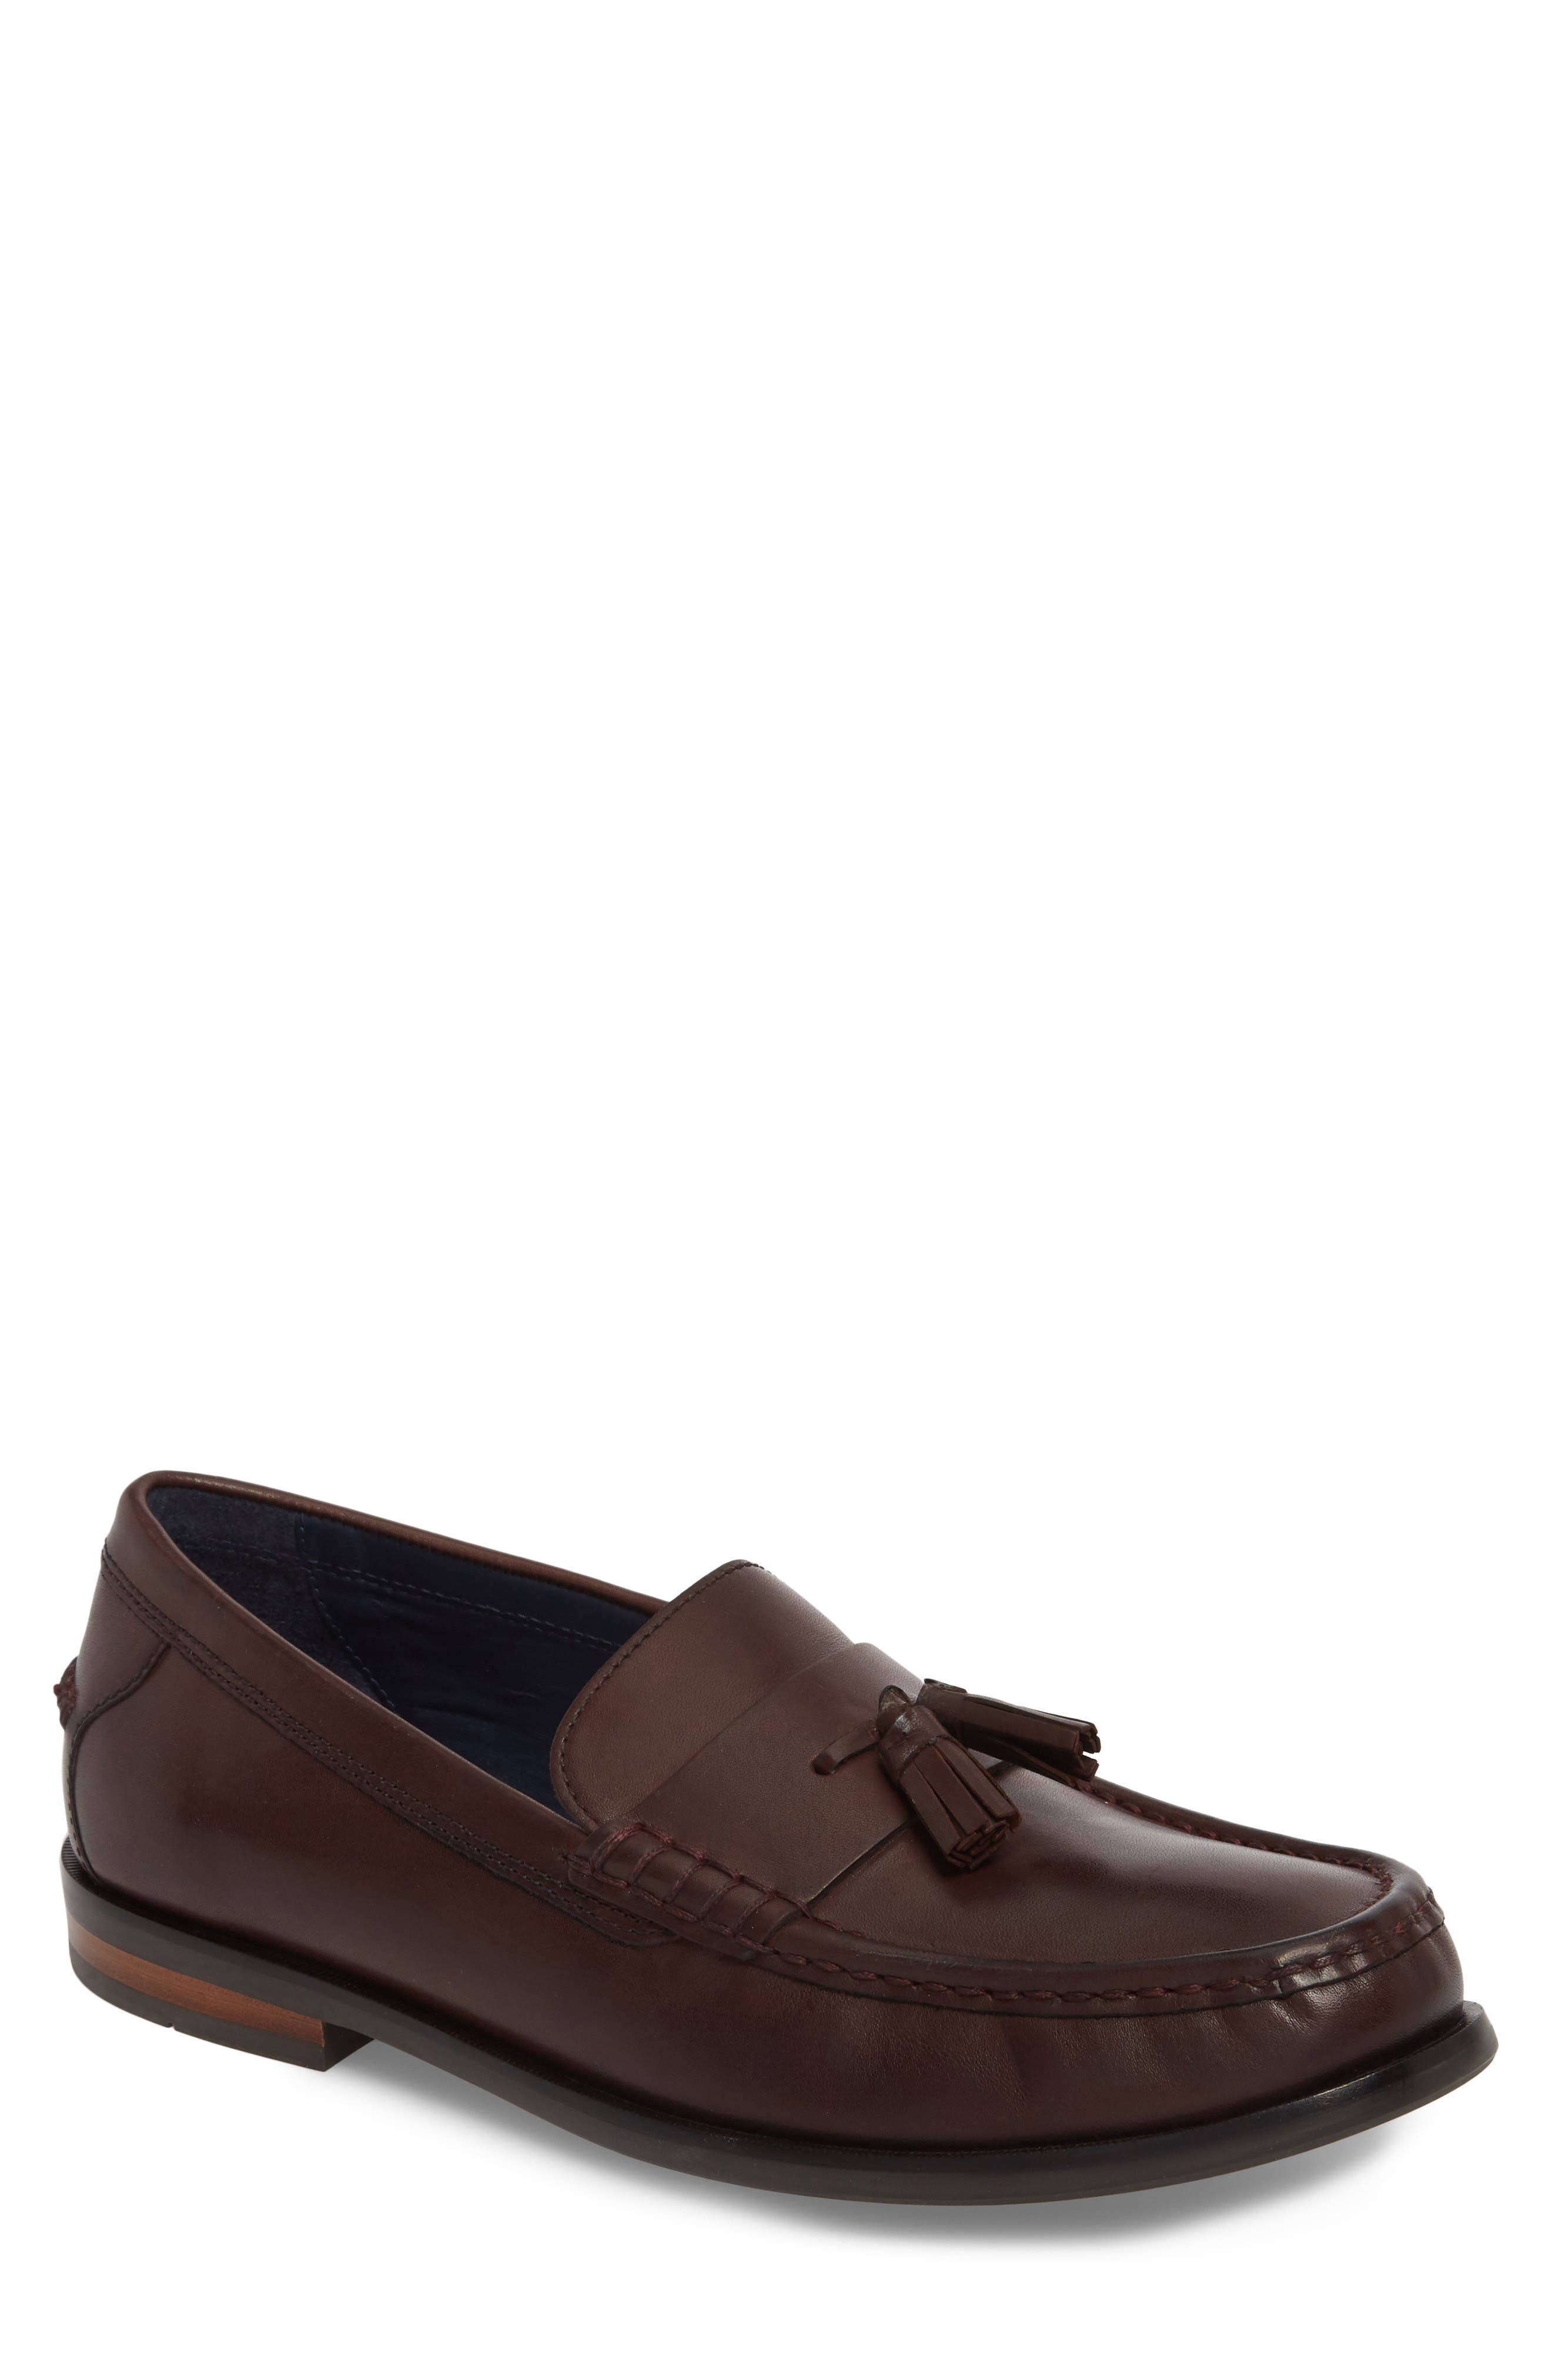 Pinch Friday Tassel Loafer,                             Main thumbnail 1, color,                             Burgundy Leather